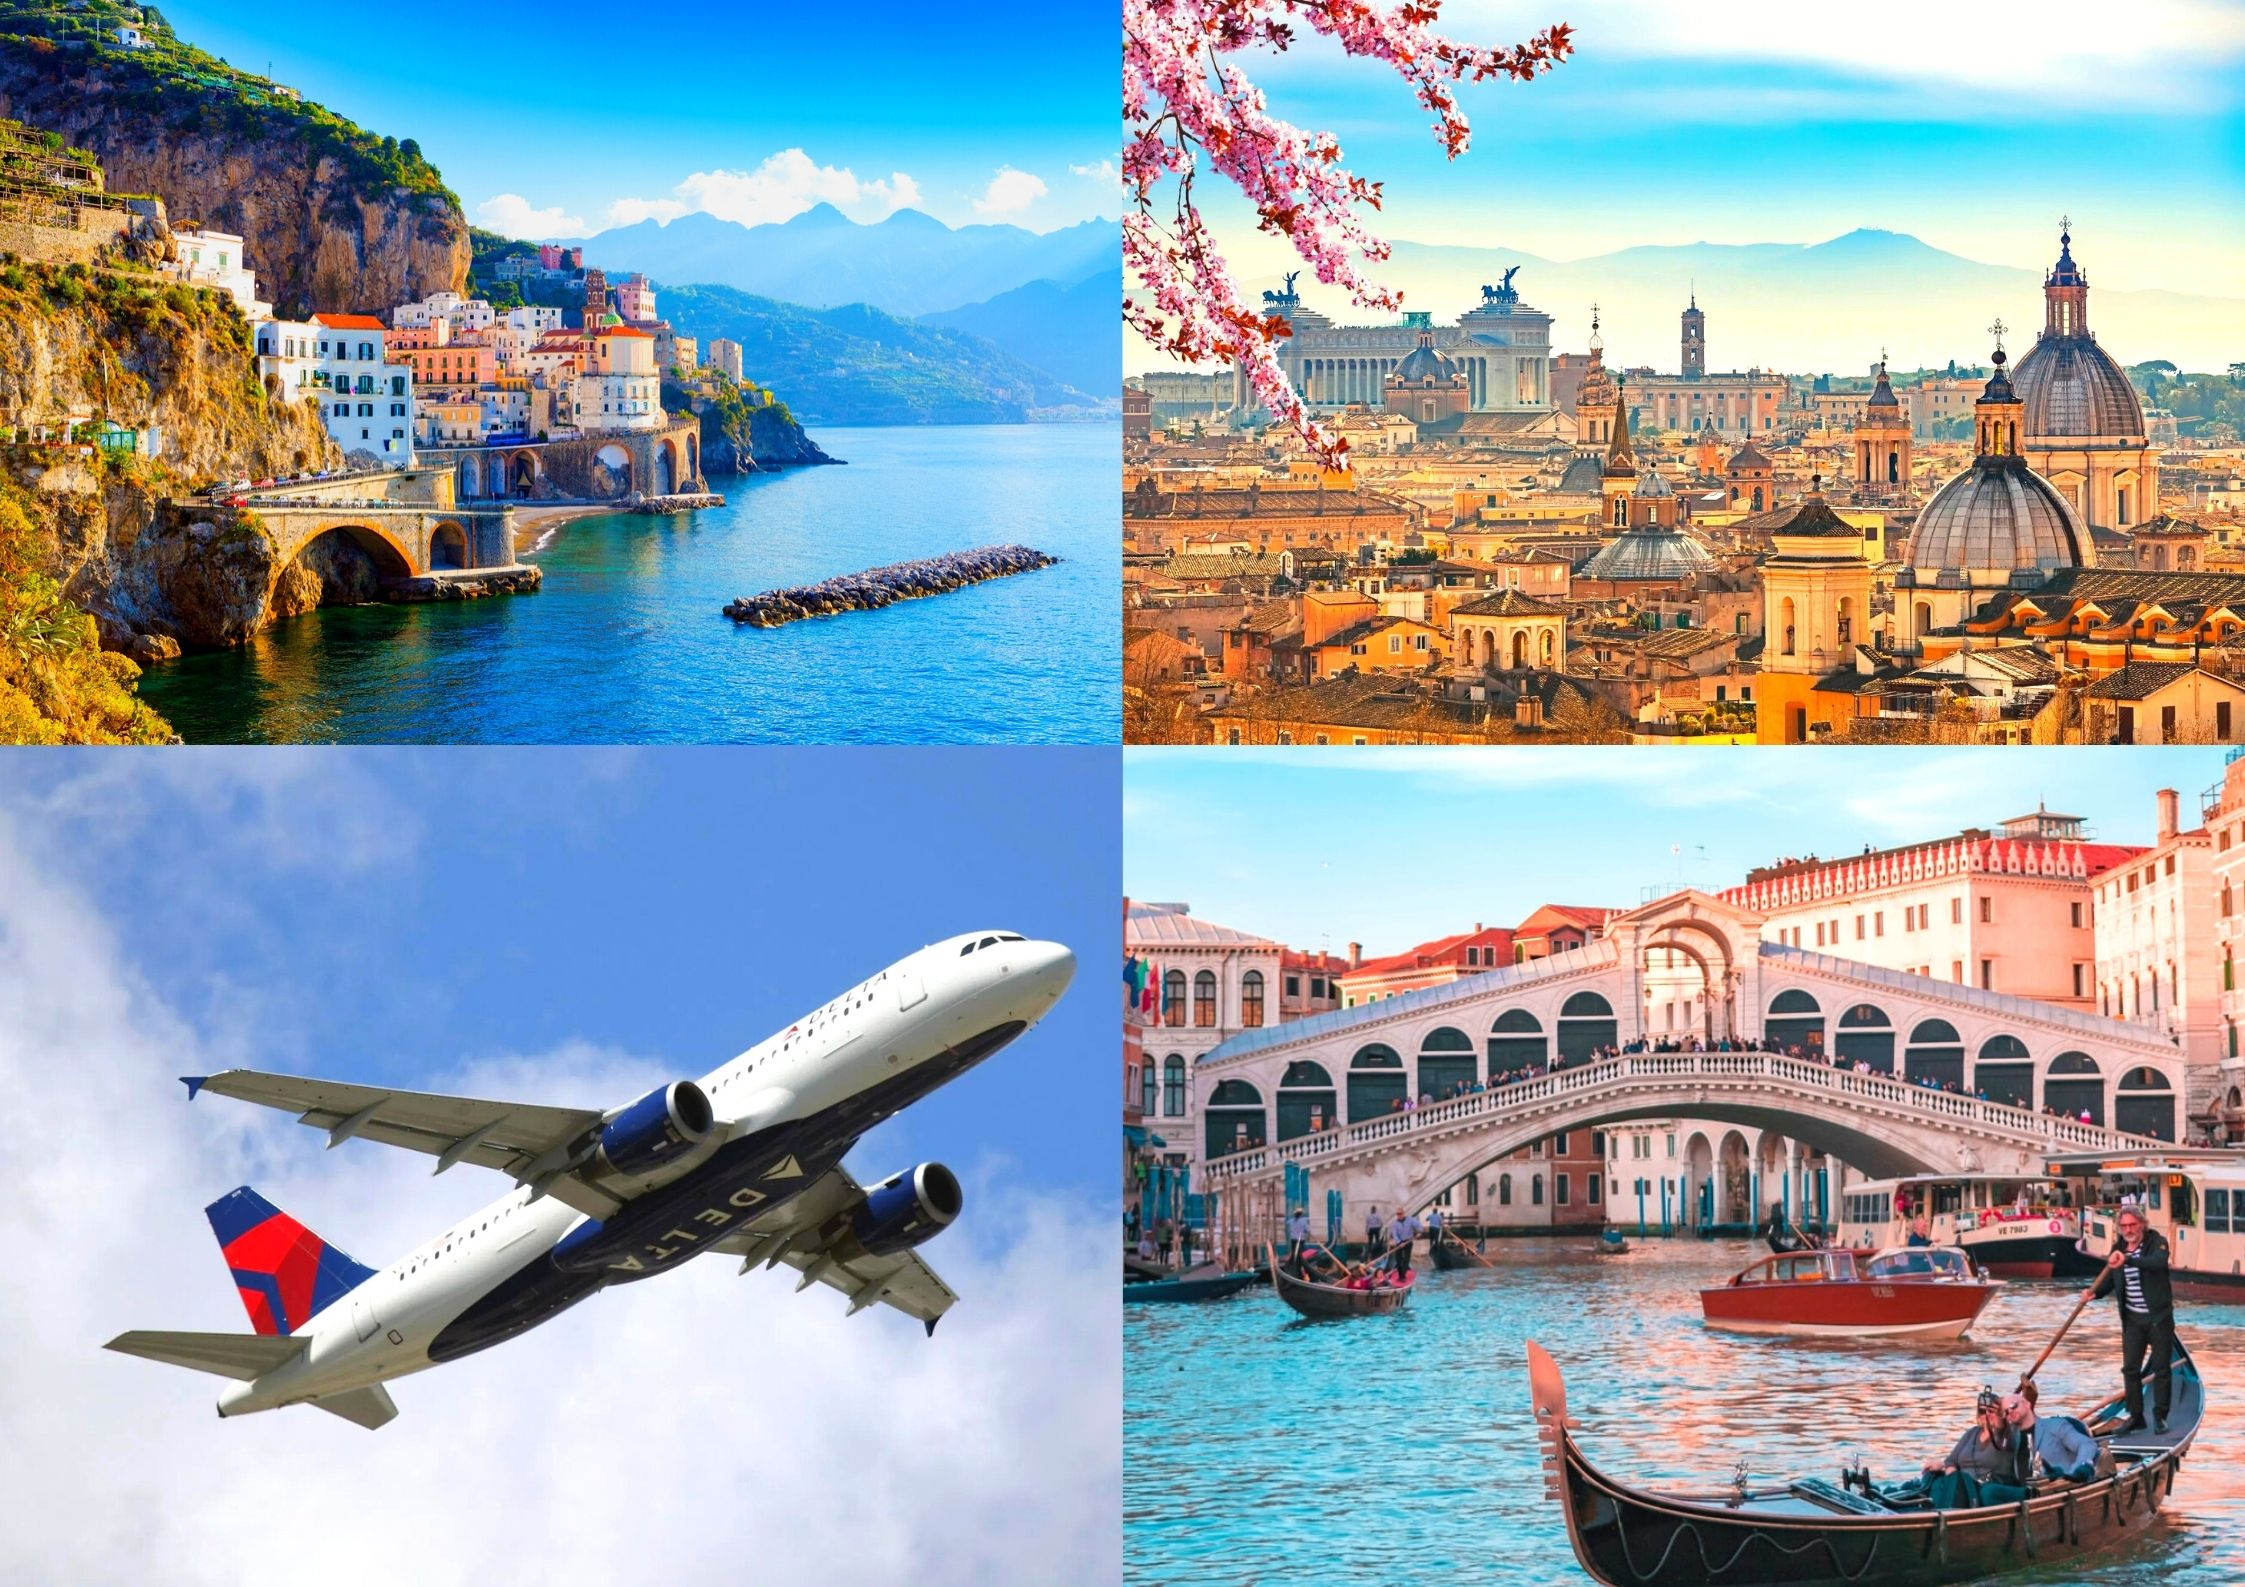 Travel To Italy In 2022: Know More Than 6 Important Reports!